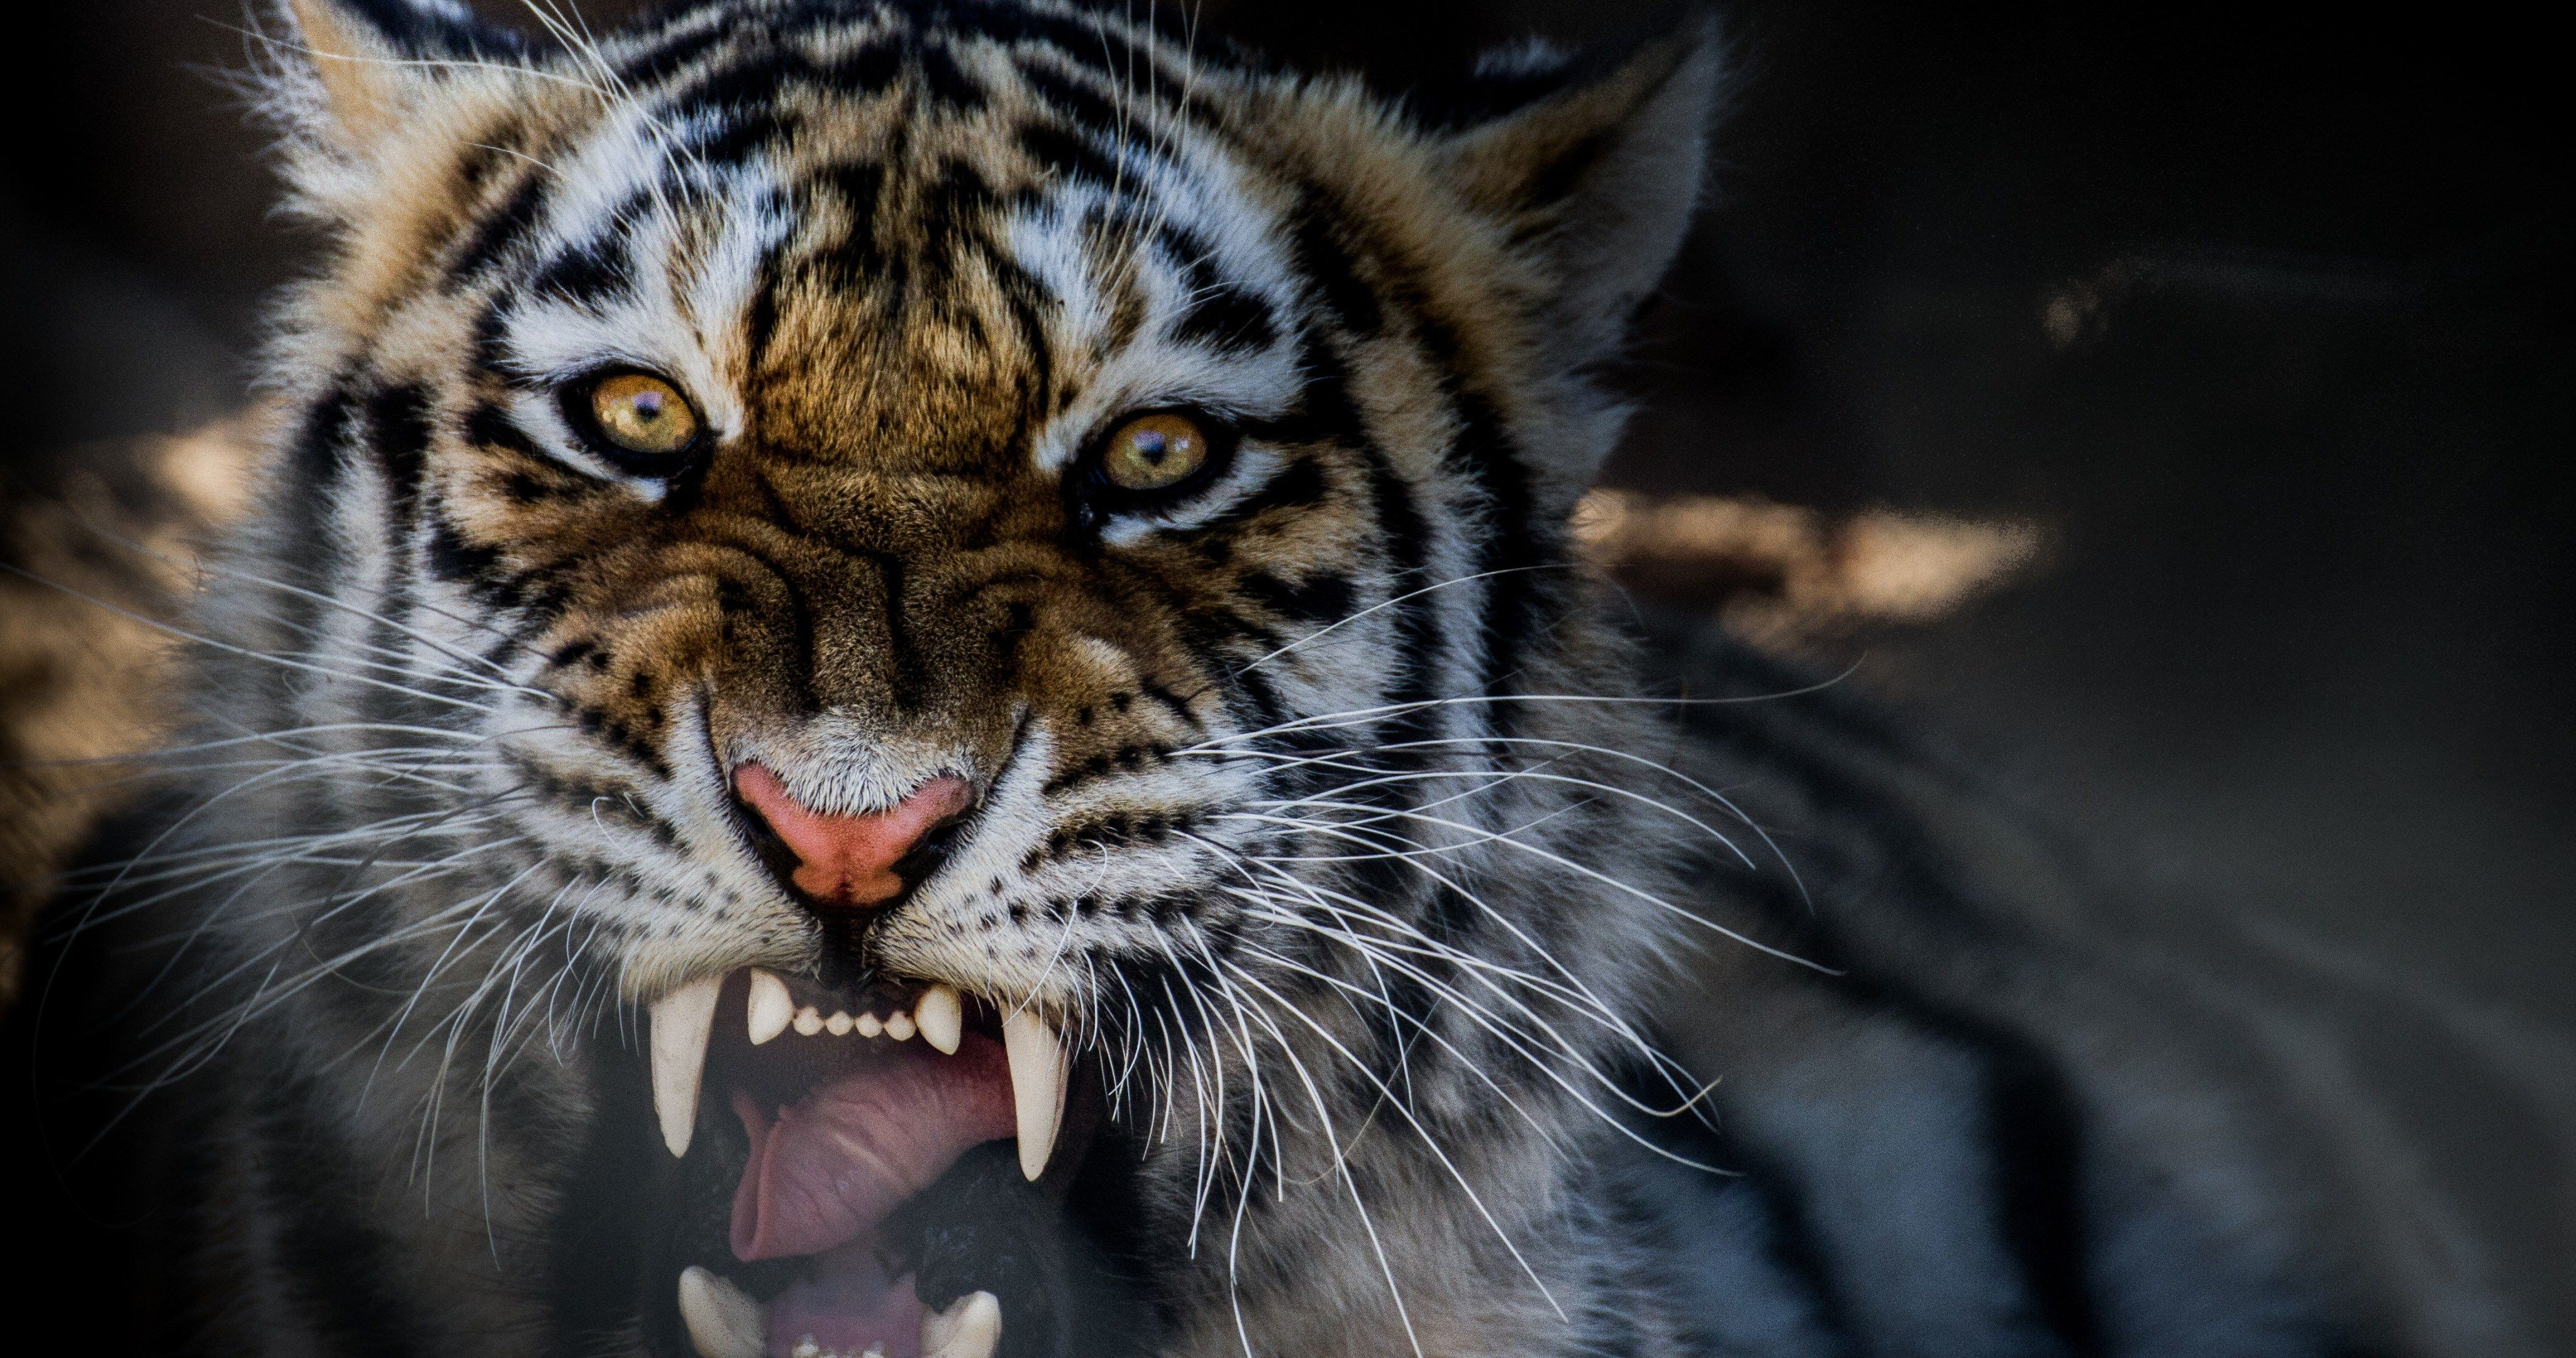 Growling Tiger 4k Ultra Hd Wallpaper Pet Tiger Animals Tiger Pictures